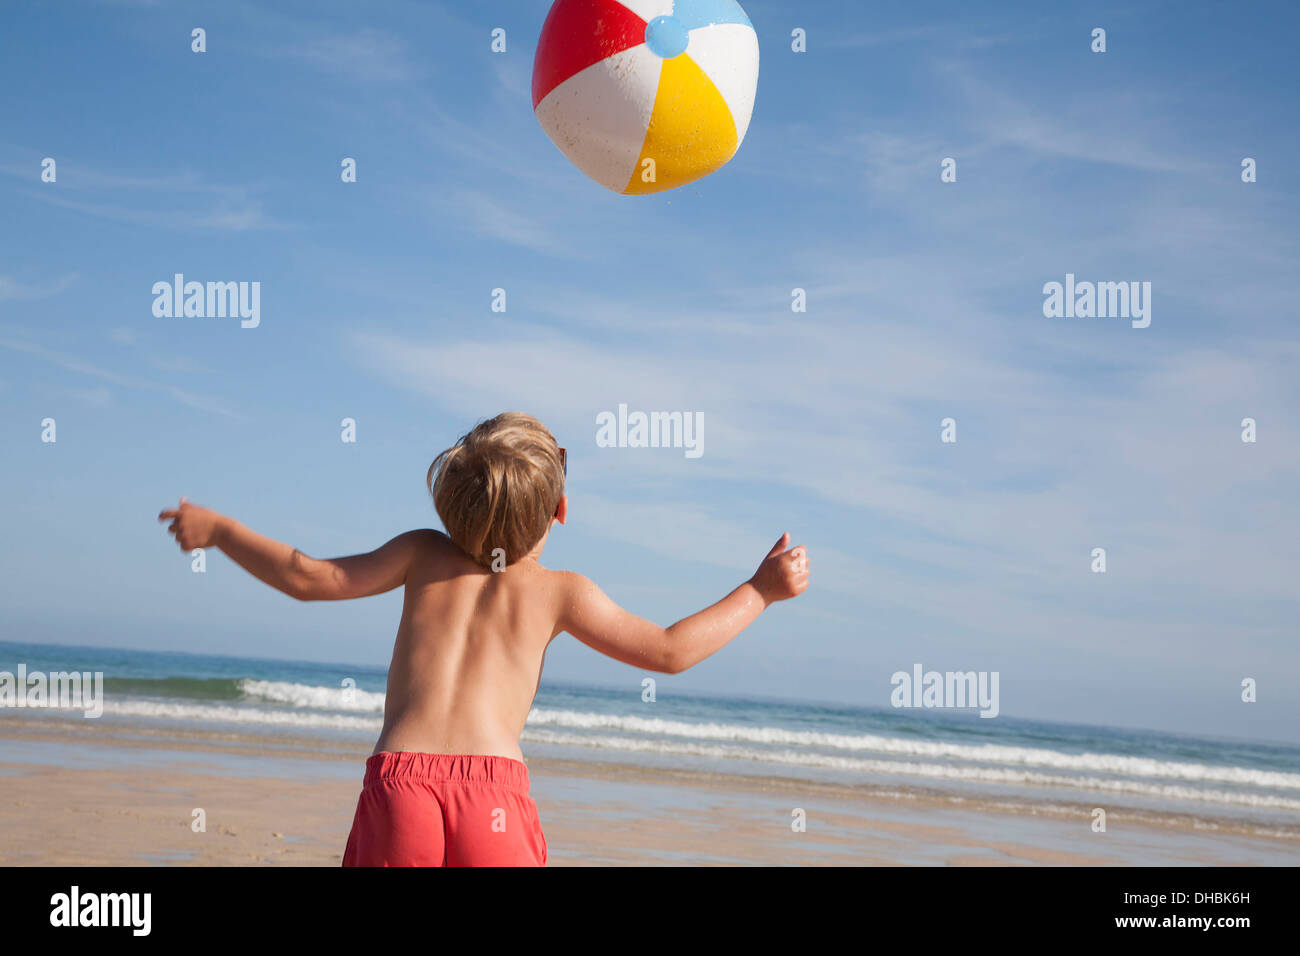 A boy in swimming trunks on the beach, with a large beach ball in the air above him. - Stock Image